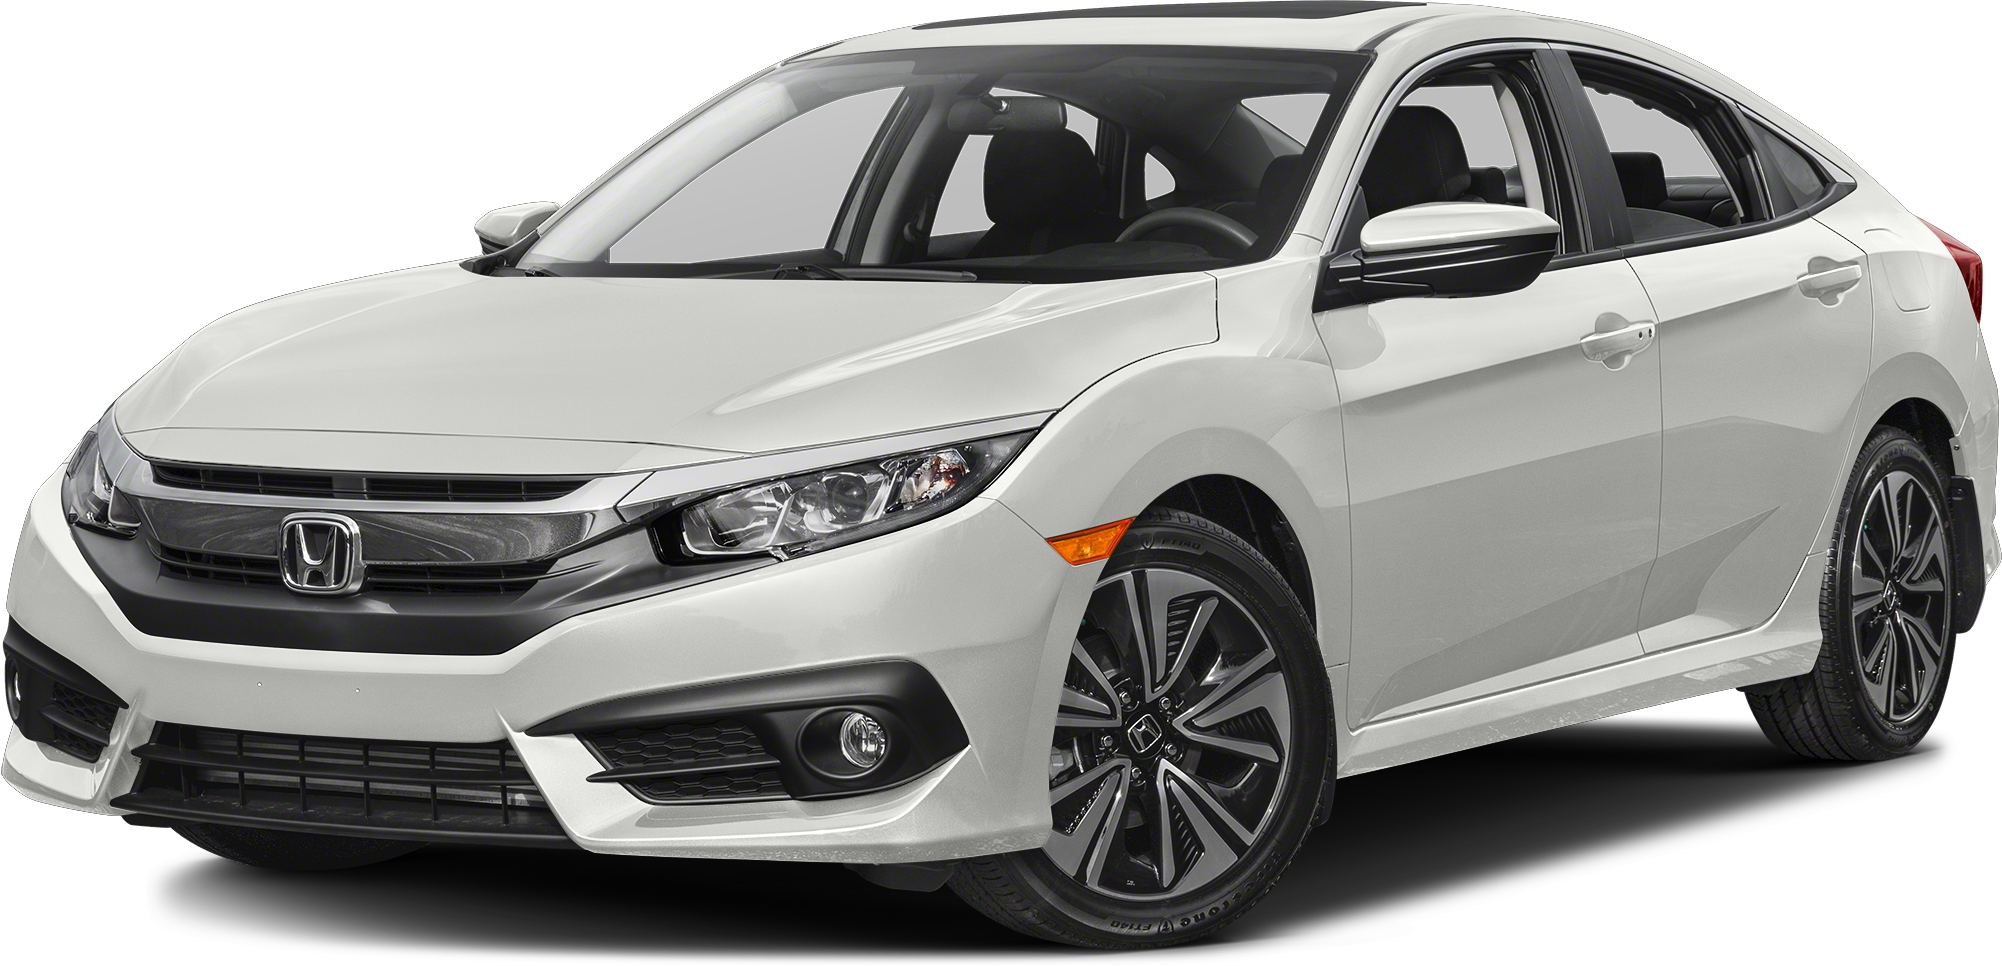 2016 honda civic sedan ex t west new york nj 15689221. Black Bedroom Furniture Sets. Home Design Ideas